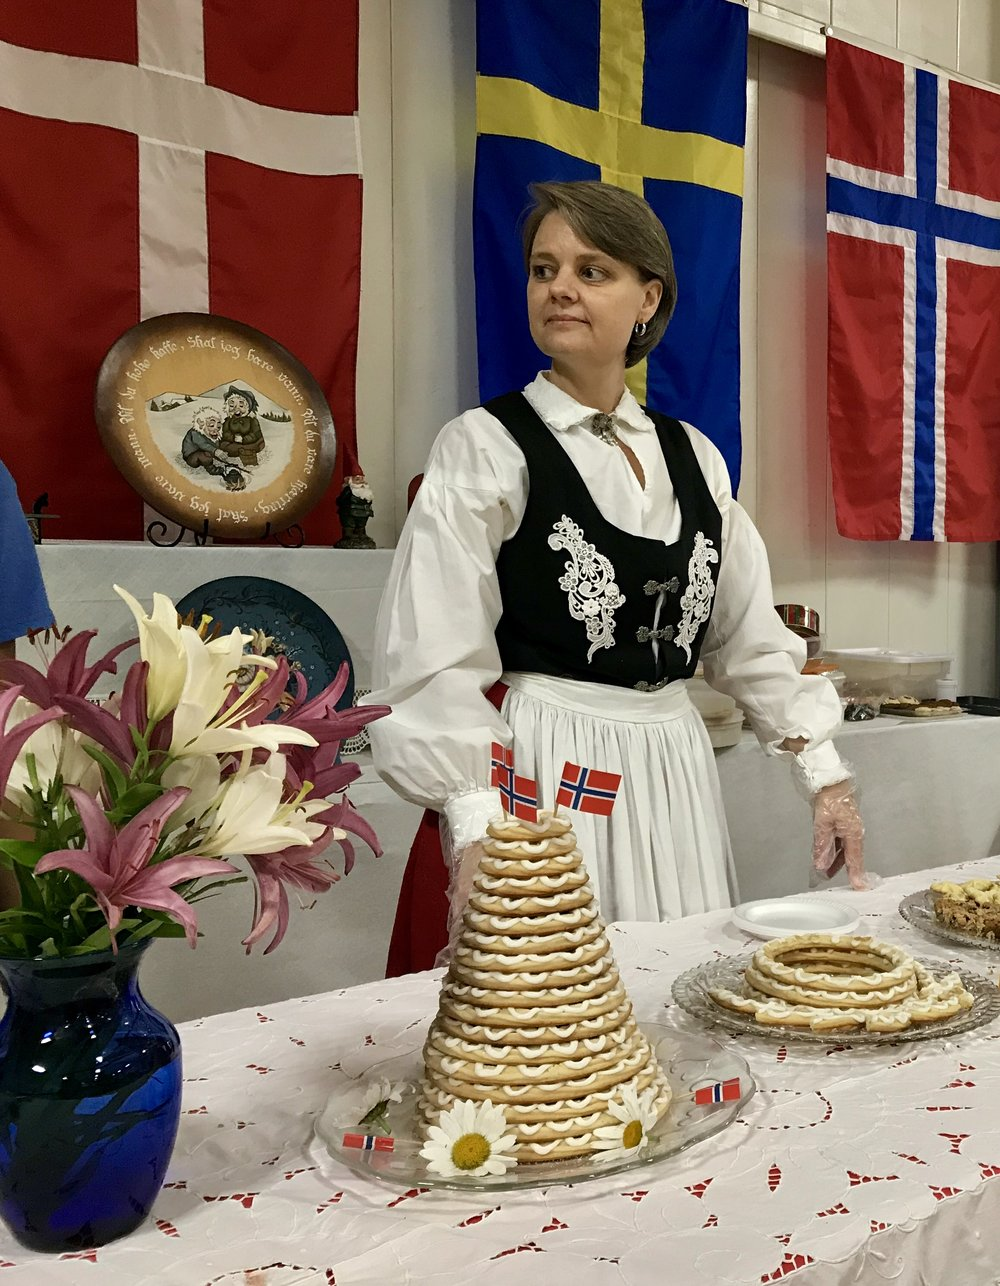 Toni Ronning stands behind her homemade Kransekake, a Norwegian wedding cake, at the Washington Island Women's Club annual International Food Festival on Friday, July 27. Ronning makes the cakes with her mother, Jeannine. The event was held in the Community Center Gym.